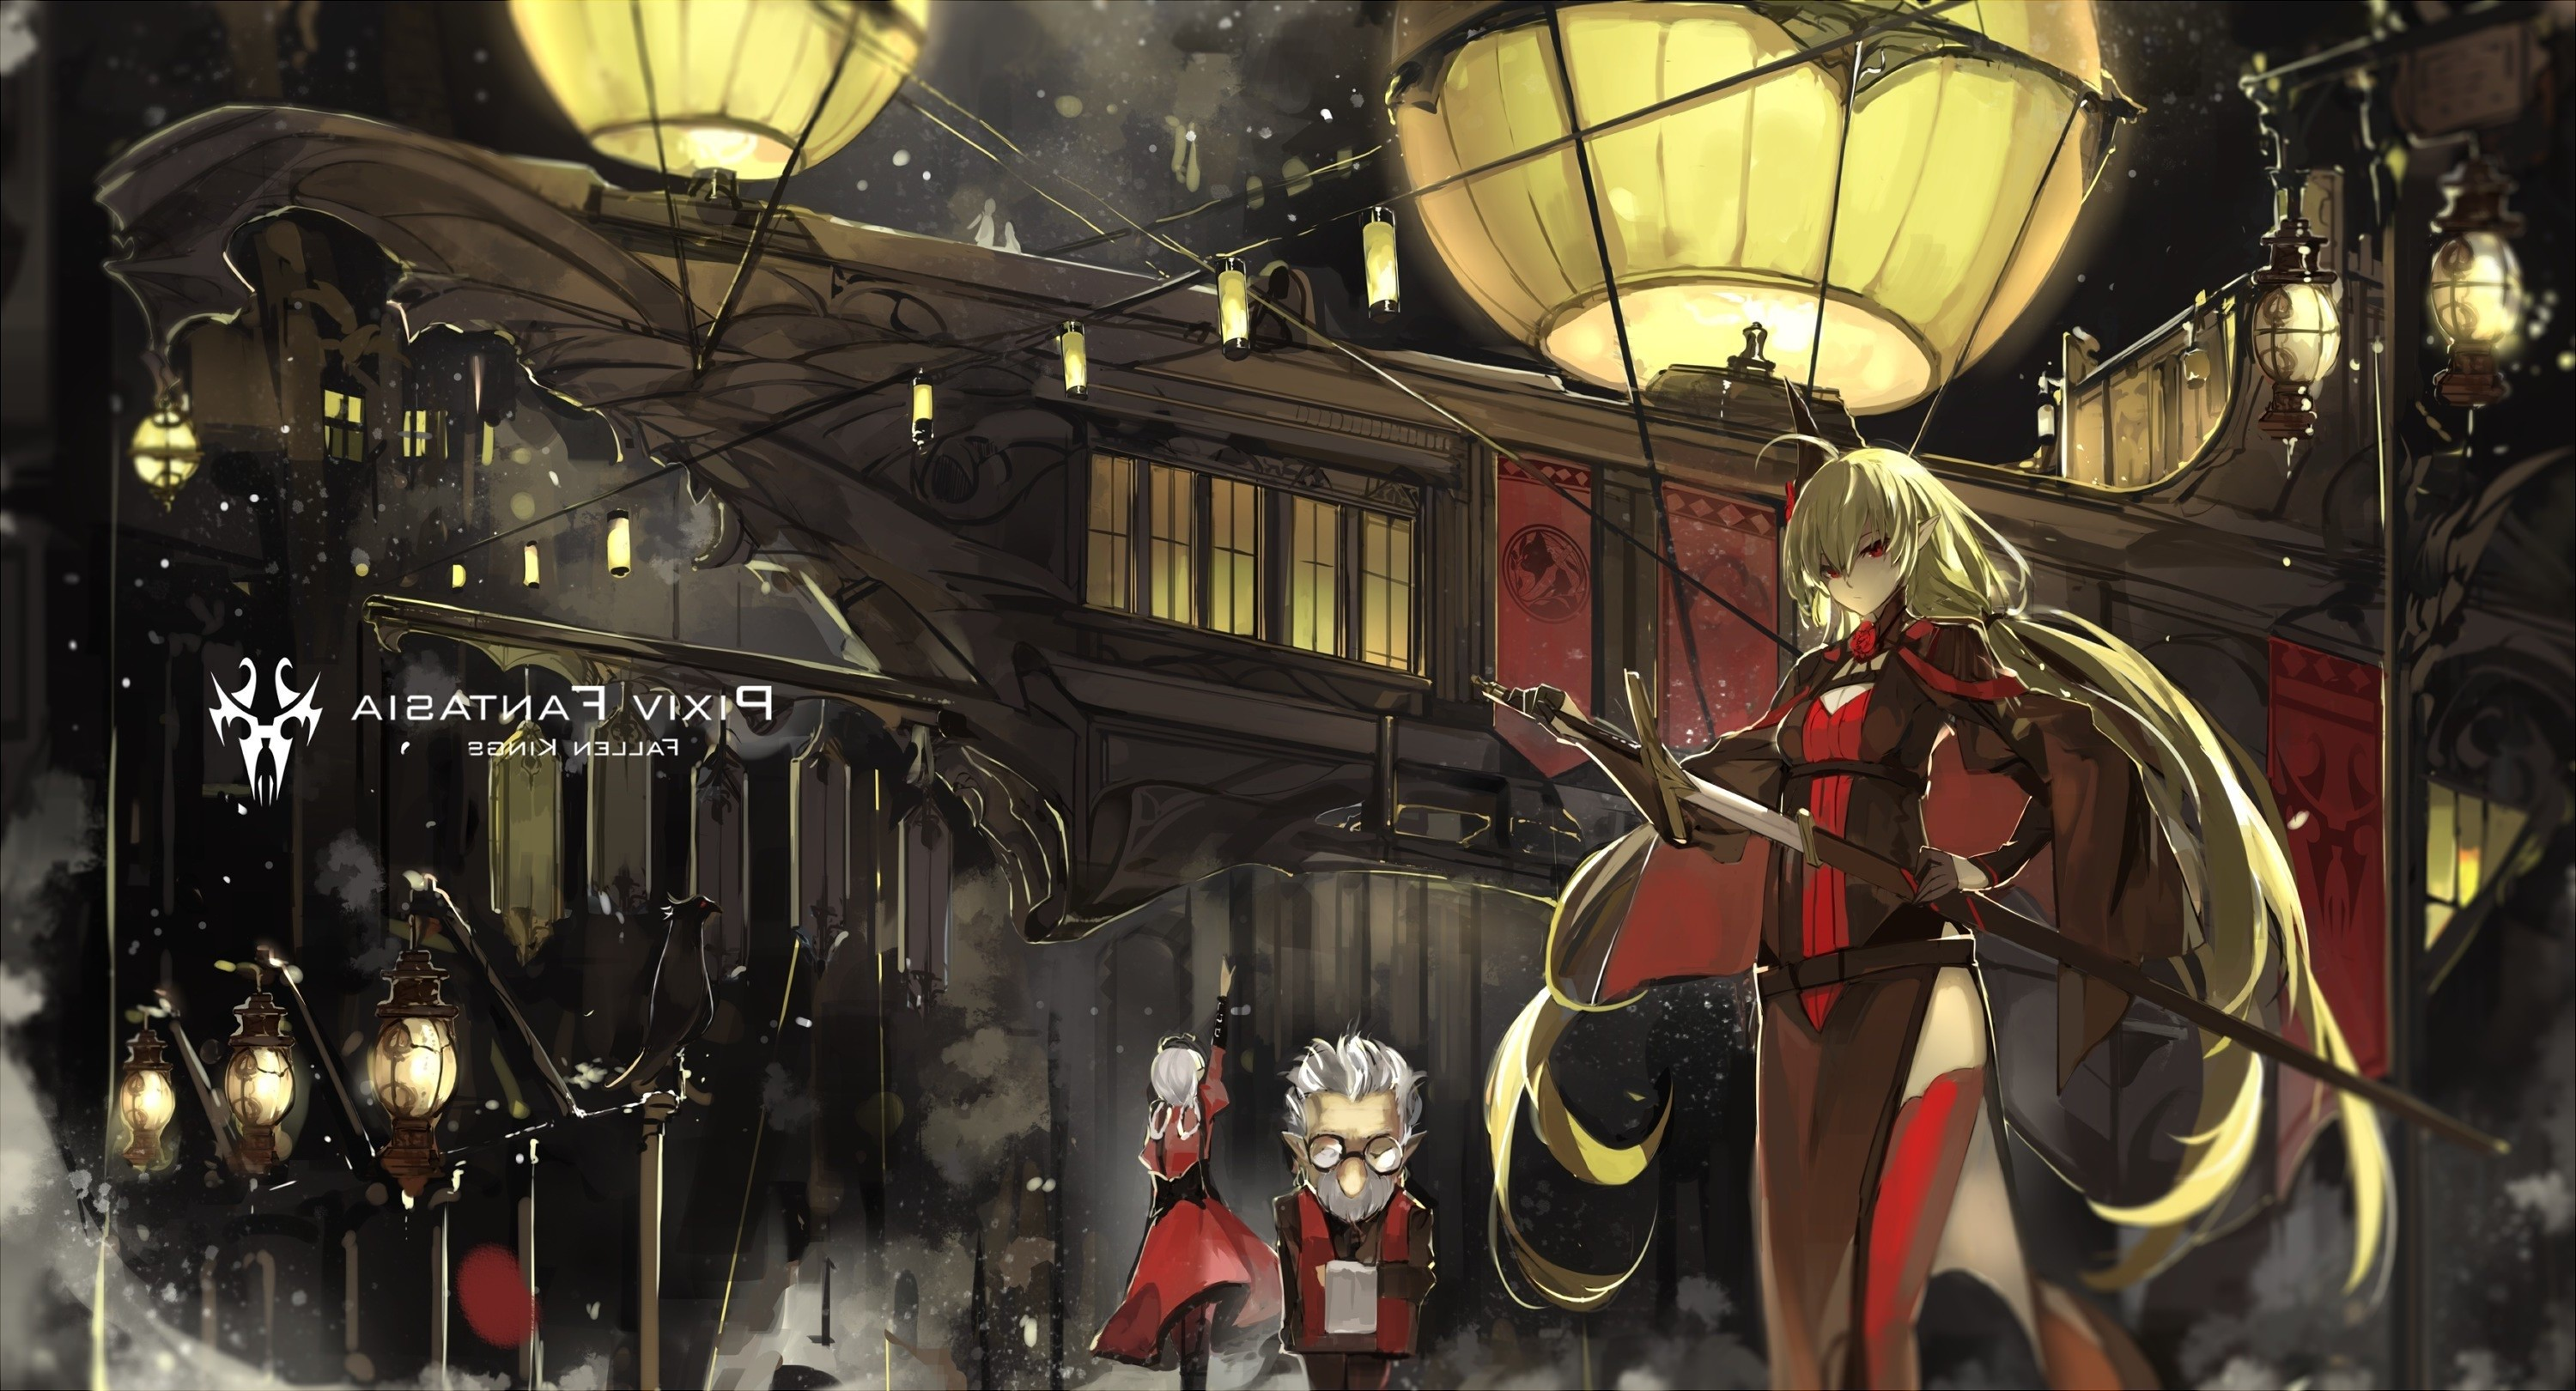 Cute Little Fairy Wallpapers Anime Pixiv Fantasia Fallen Kings Original Characters